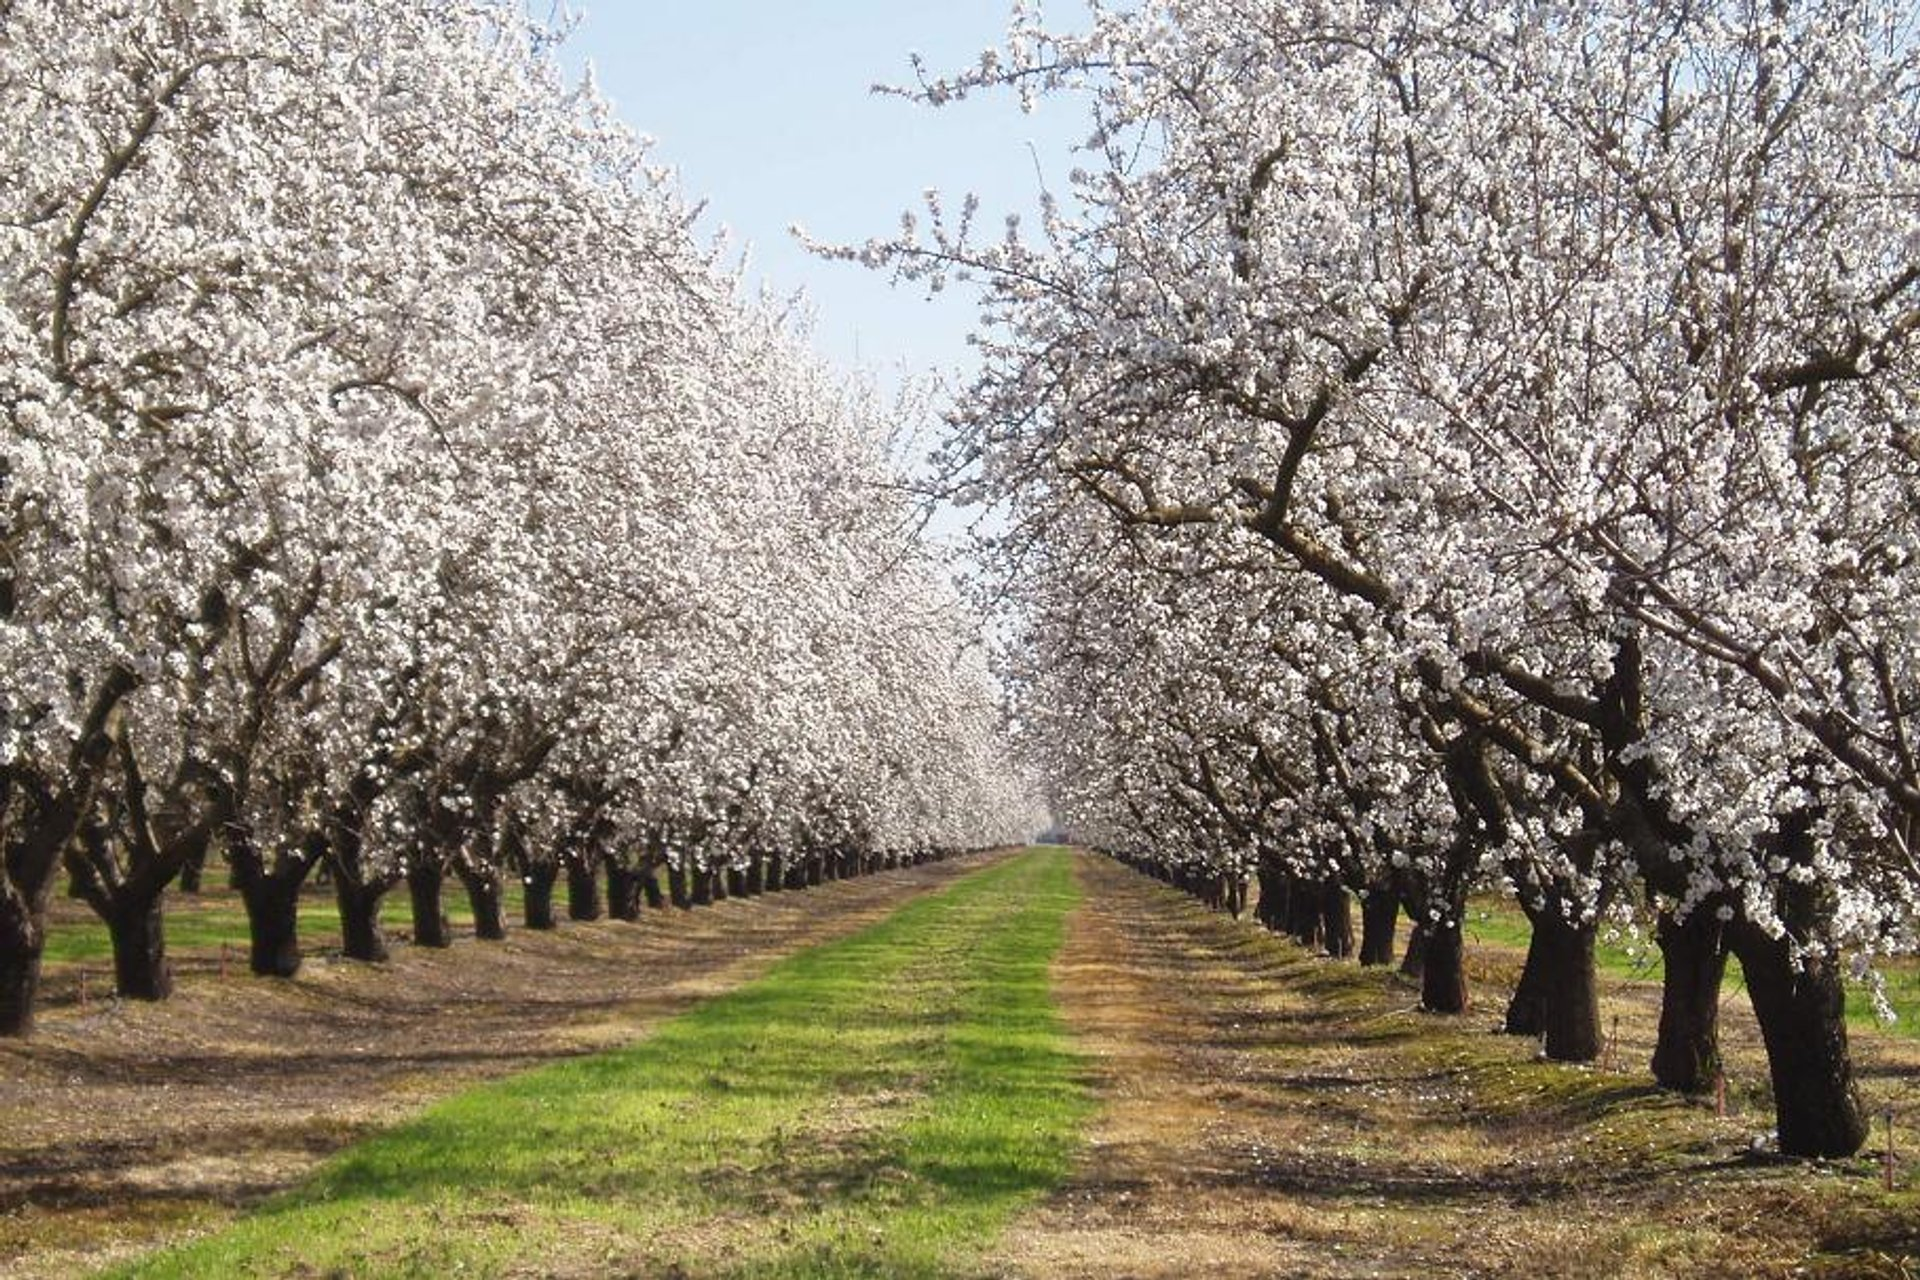 Almond blossoms near Vernalis, along 132 west of Modesto 2020